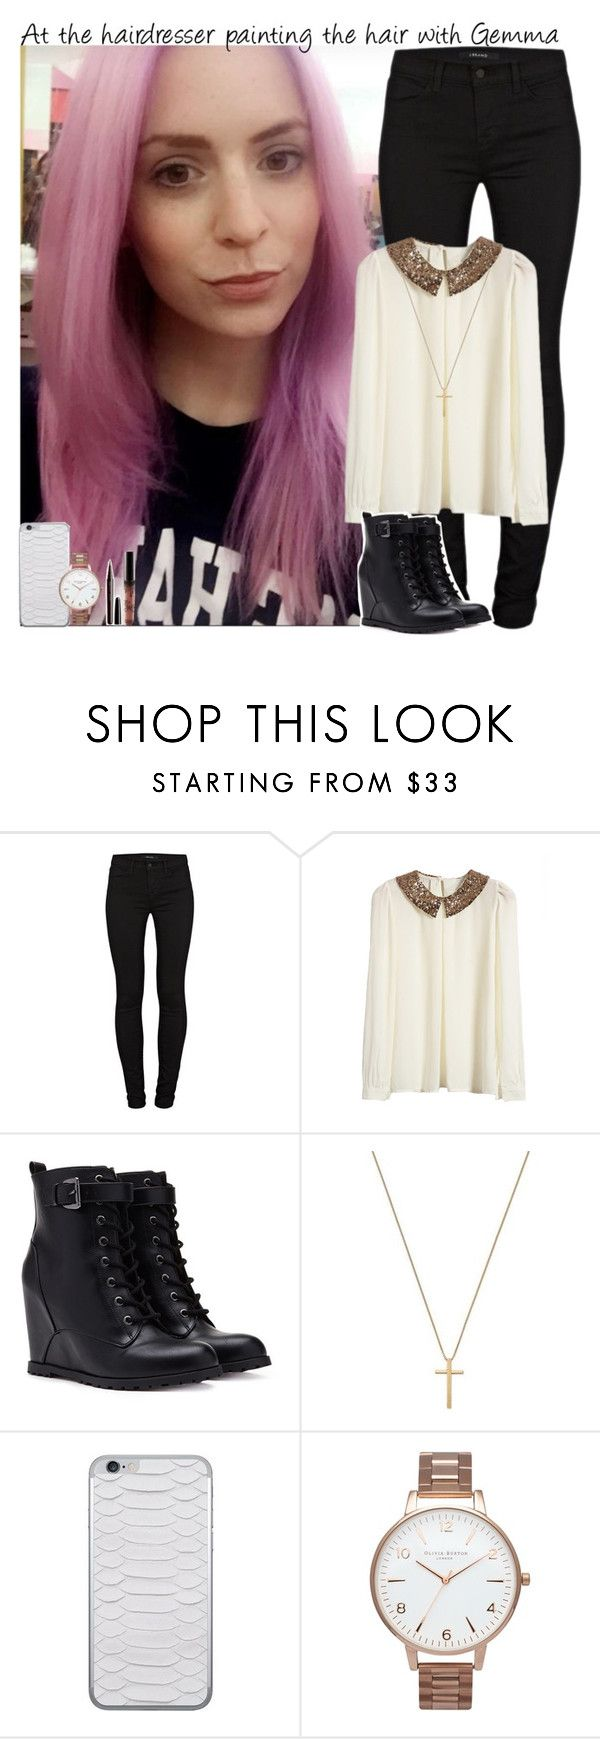 """""""At the hairdresser painting the hair with Gemma"""" by giovannacarlamalik ❤ liked on Polyvore featuring J Brand, Forever 21, Gucci, Jamie Clawson, Olivia Burton and Marc Jacobs"""